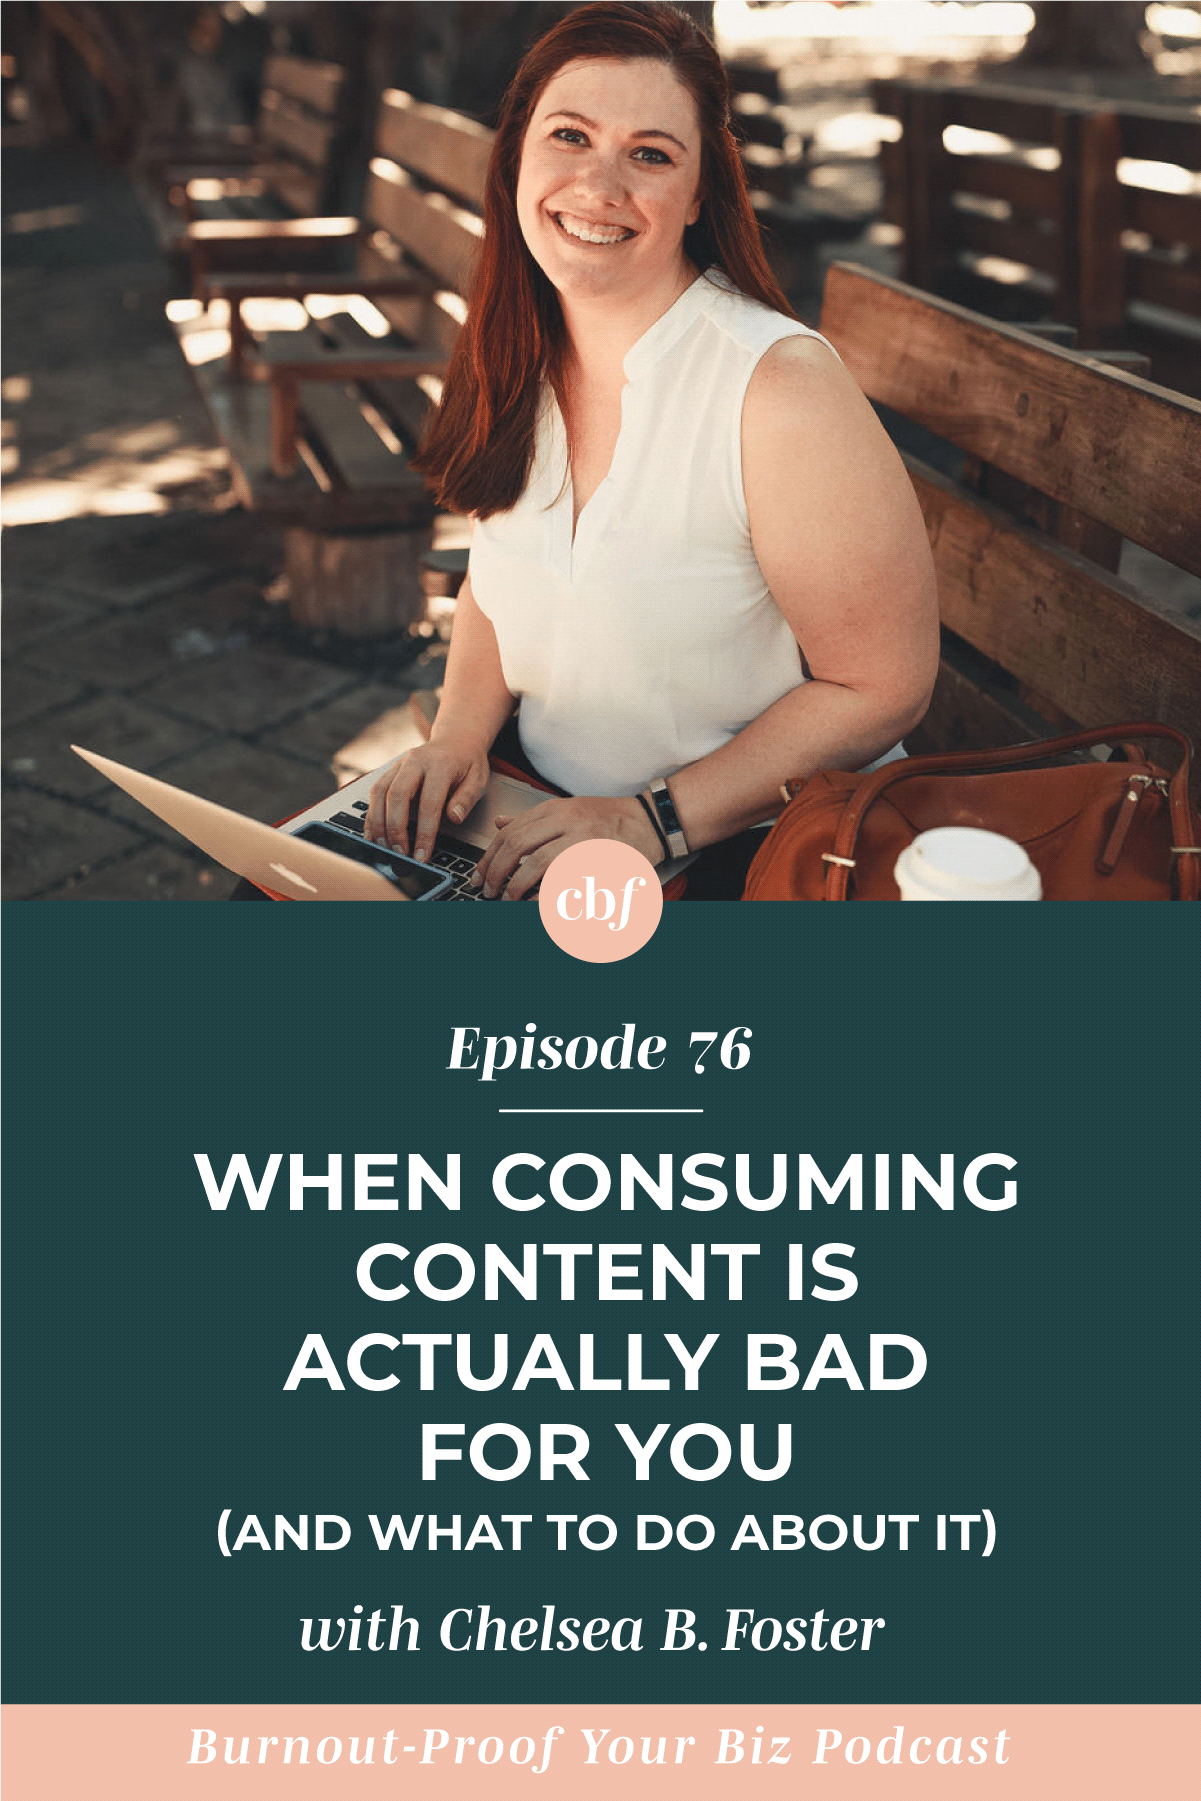 Burnout-Proof Your Biz Podcast with Chelsea B Foster | Episode 076 - When Consuming Content is Actually Bad for You - How to take back your expertise and confidence by letting go of FOMO and editing your content consumption.  |||  burnout-proof your business podcast | workflow & productivity specialist | consuming and implementing content for your business, the smart way | clearing the clutter | taking back your expertise | letting go of baggage and chaos | becoming the best version of yourself  stop consuming so much, and start taking action, chelsea b foster, burnout-proof your biz, ways to consume content for your business, the best content for your business, letting go of the content that's no longer serving you and your business, running your business your way, podcasts for solopreneurs, best practices for multi-passionate creatives, solopreneurs, and entrepreneurs